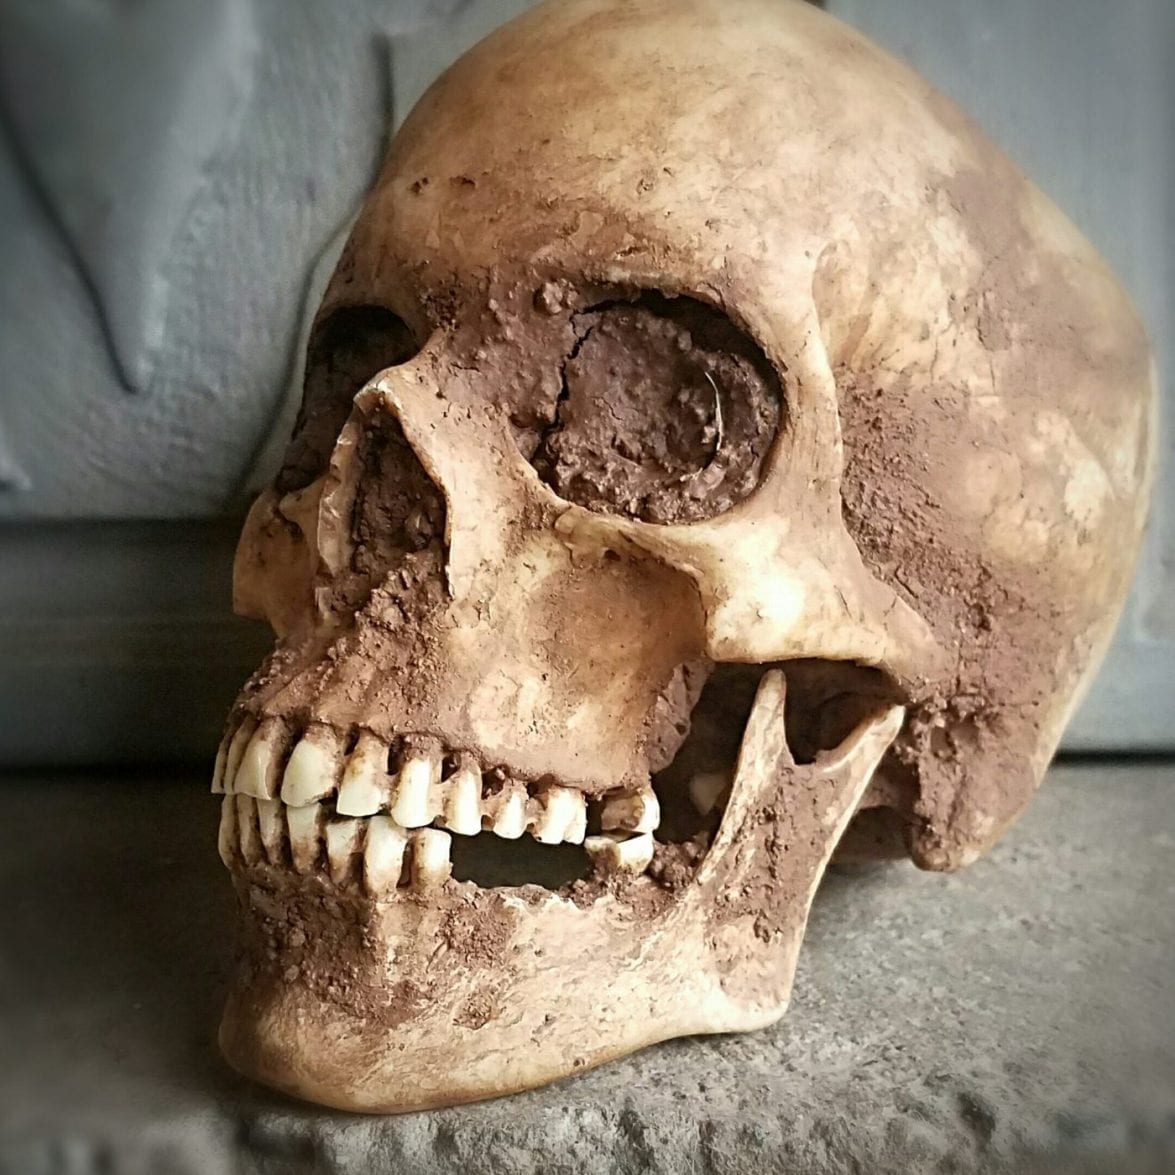 Best Realistic Human Skull Replica, Real Human Skull, Human Medical Skull